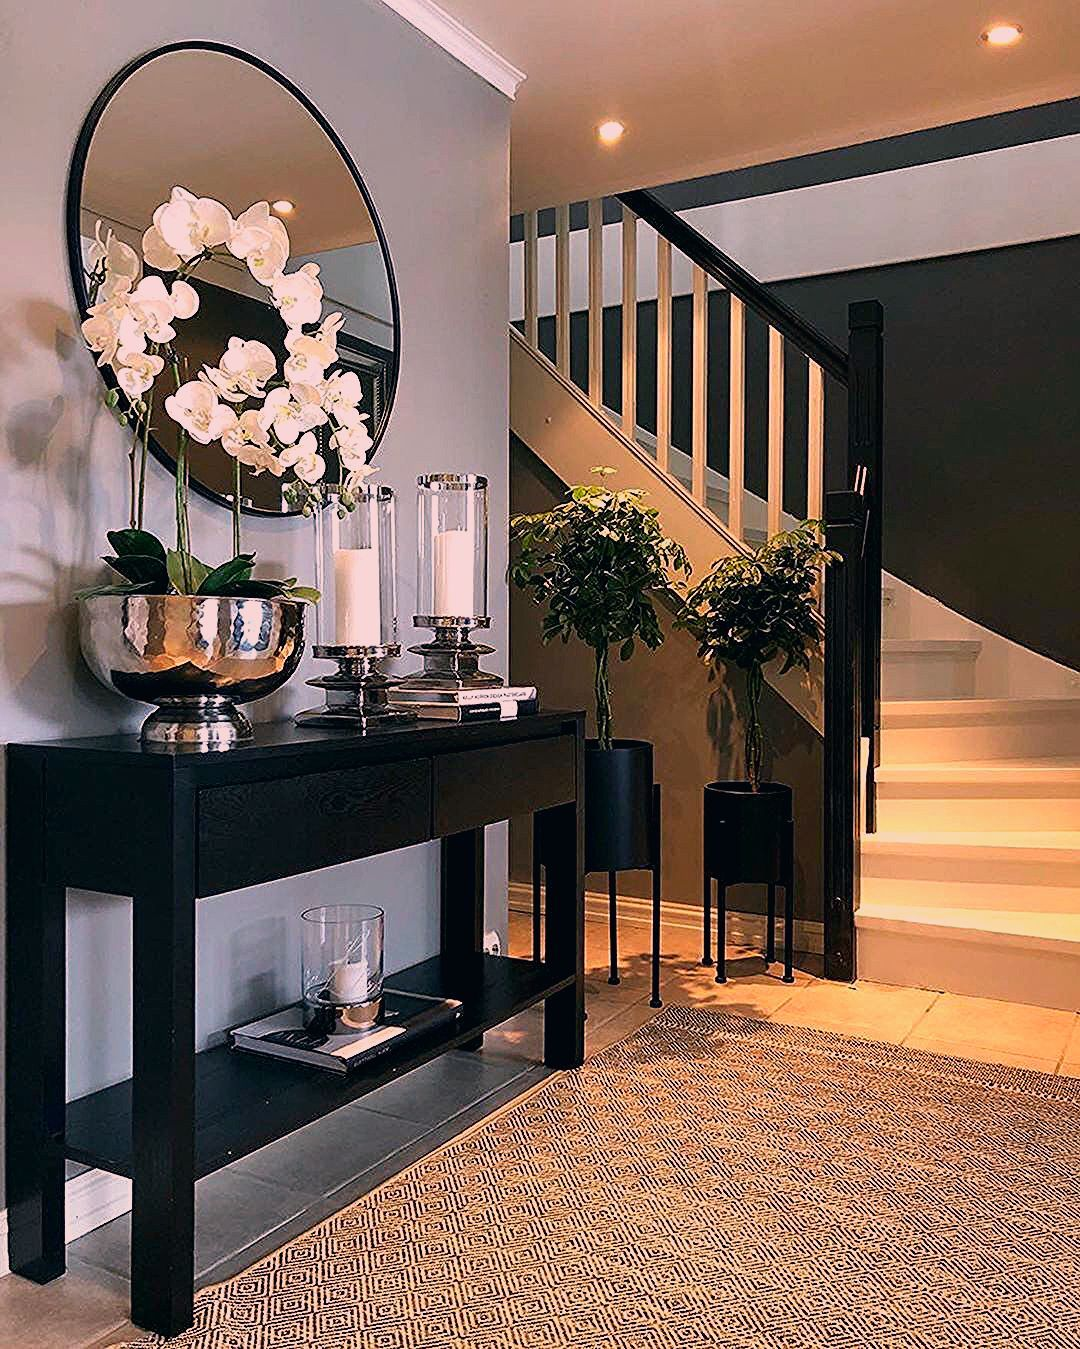 Hallway Ideas Entrance Narrow In 2020 (With Images